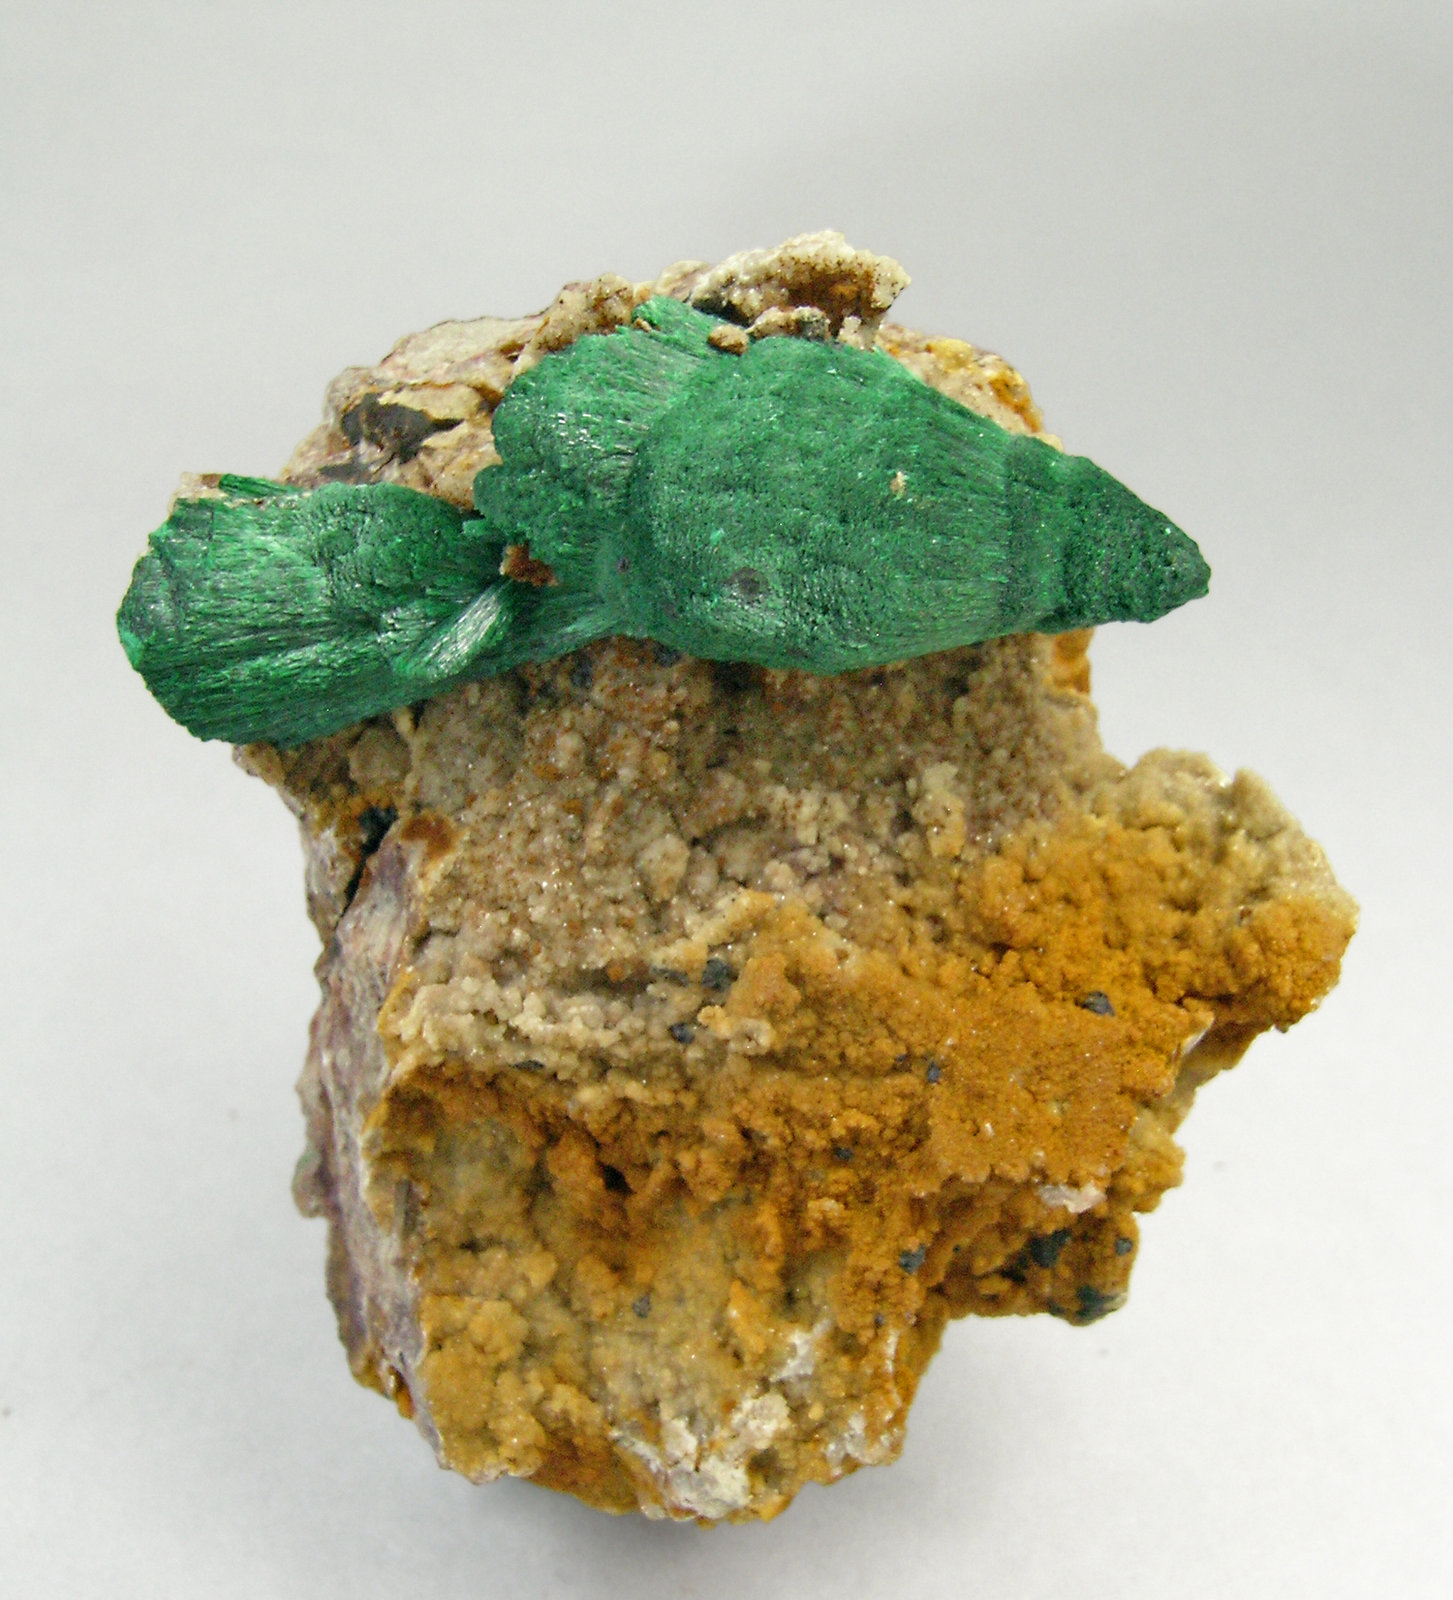 specimens/s_imagesP9/Malachite-NP26P9.jpg